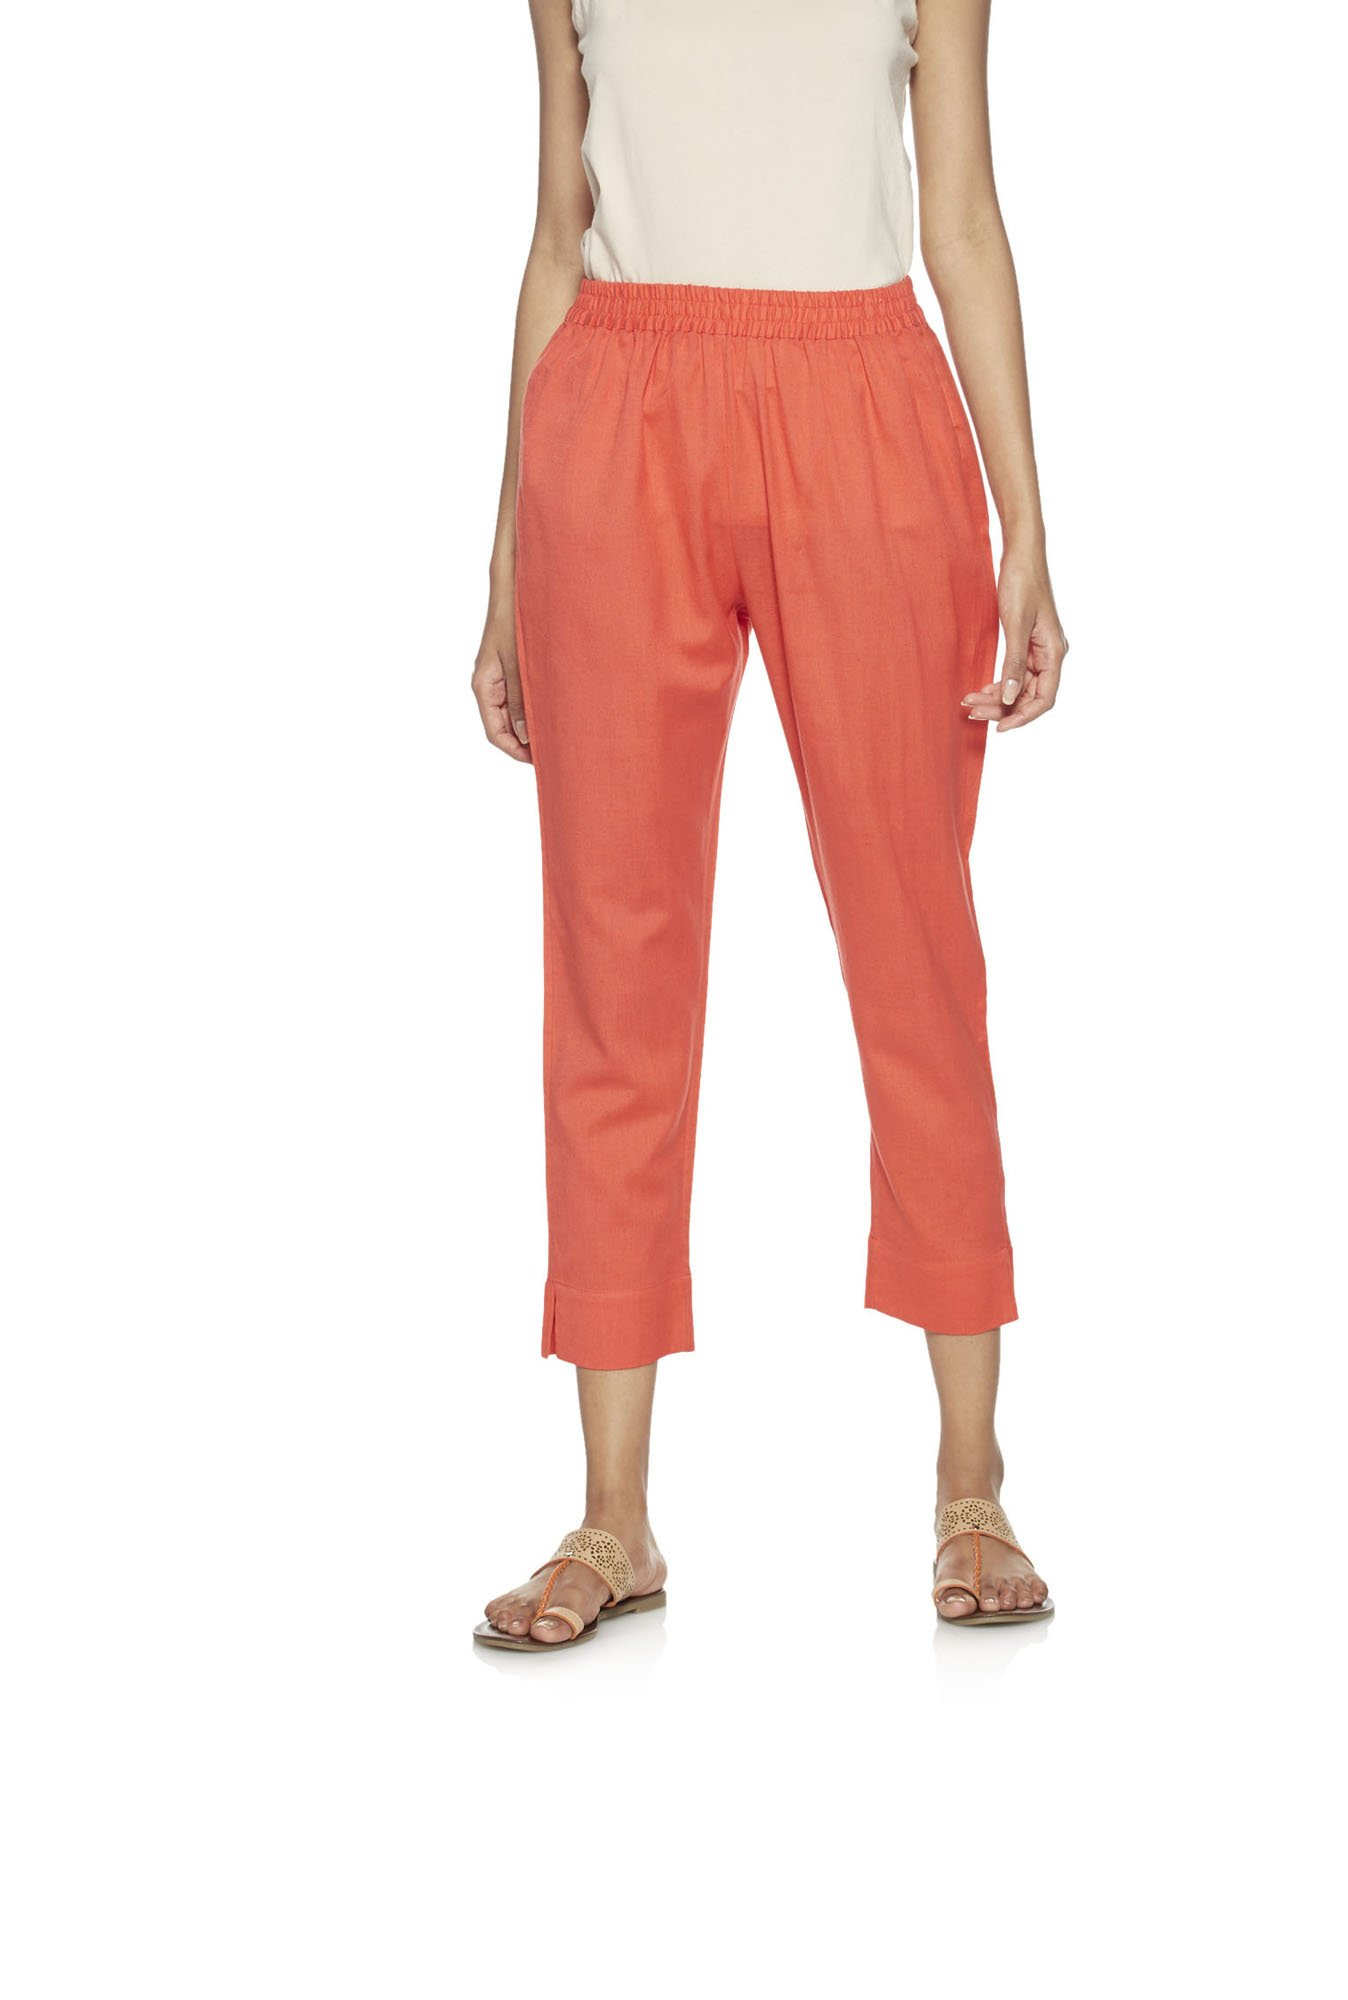 Utsa by Westside Coral Ethnic Pants